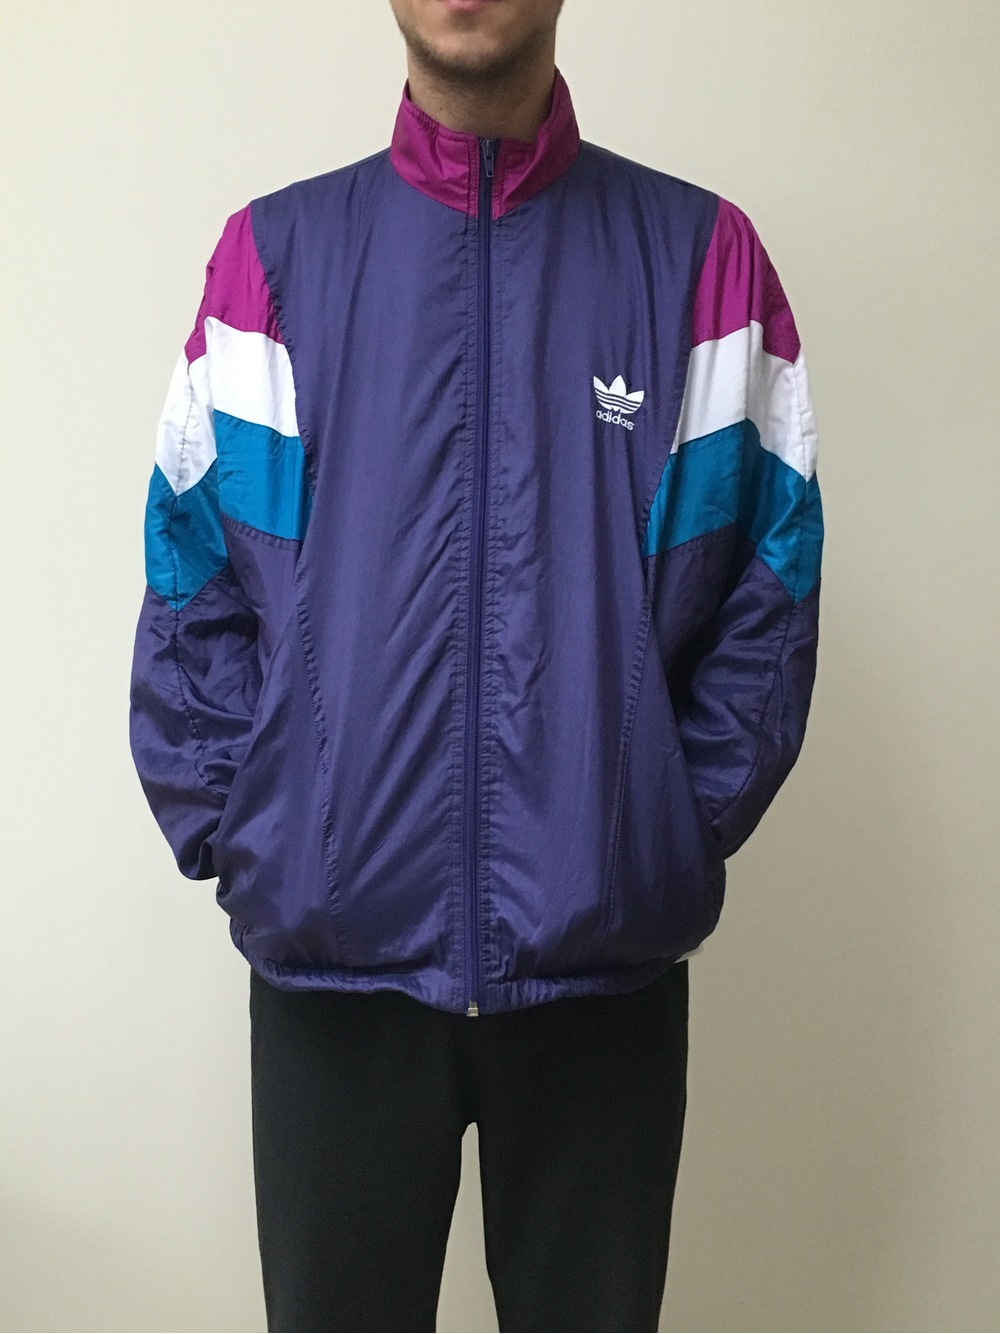 vintage adidas track jacket windbreaker 438859 from martin at klekt. Black Bedroom Furniture Sets. Home Design Ideas